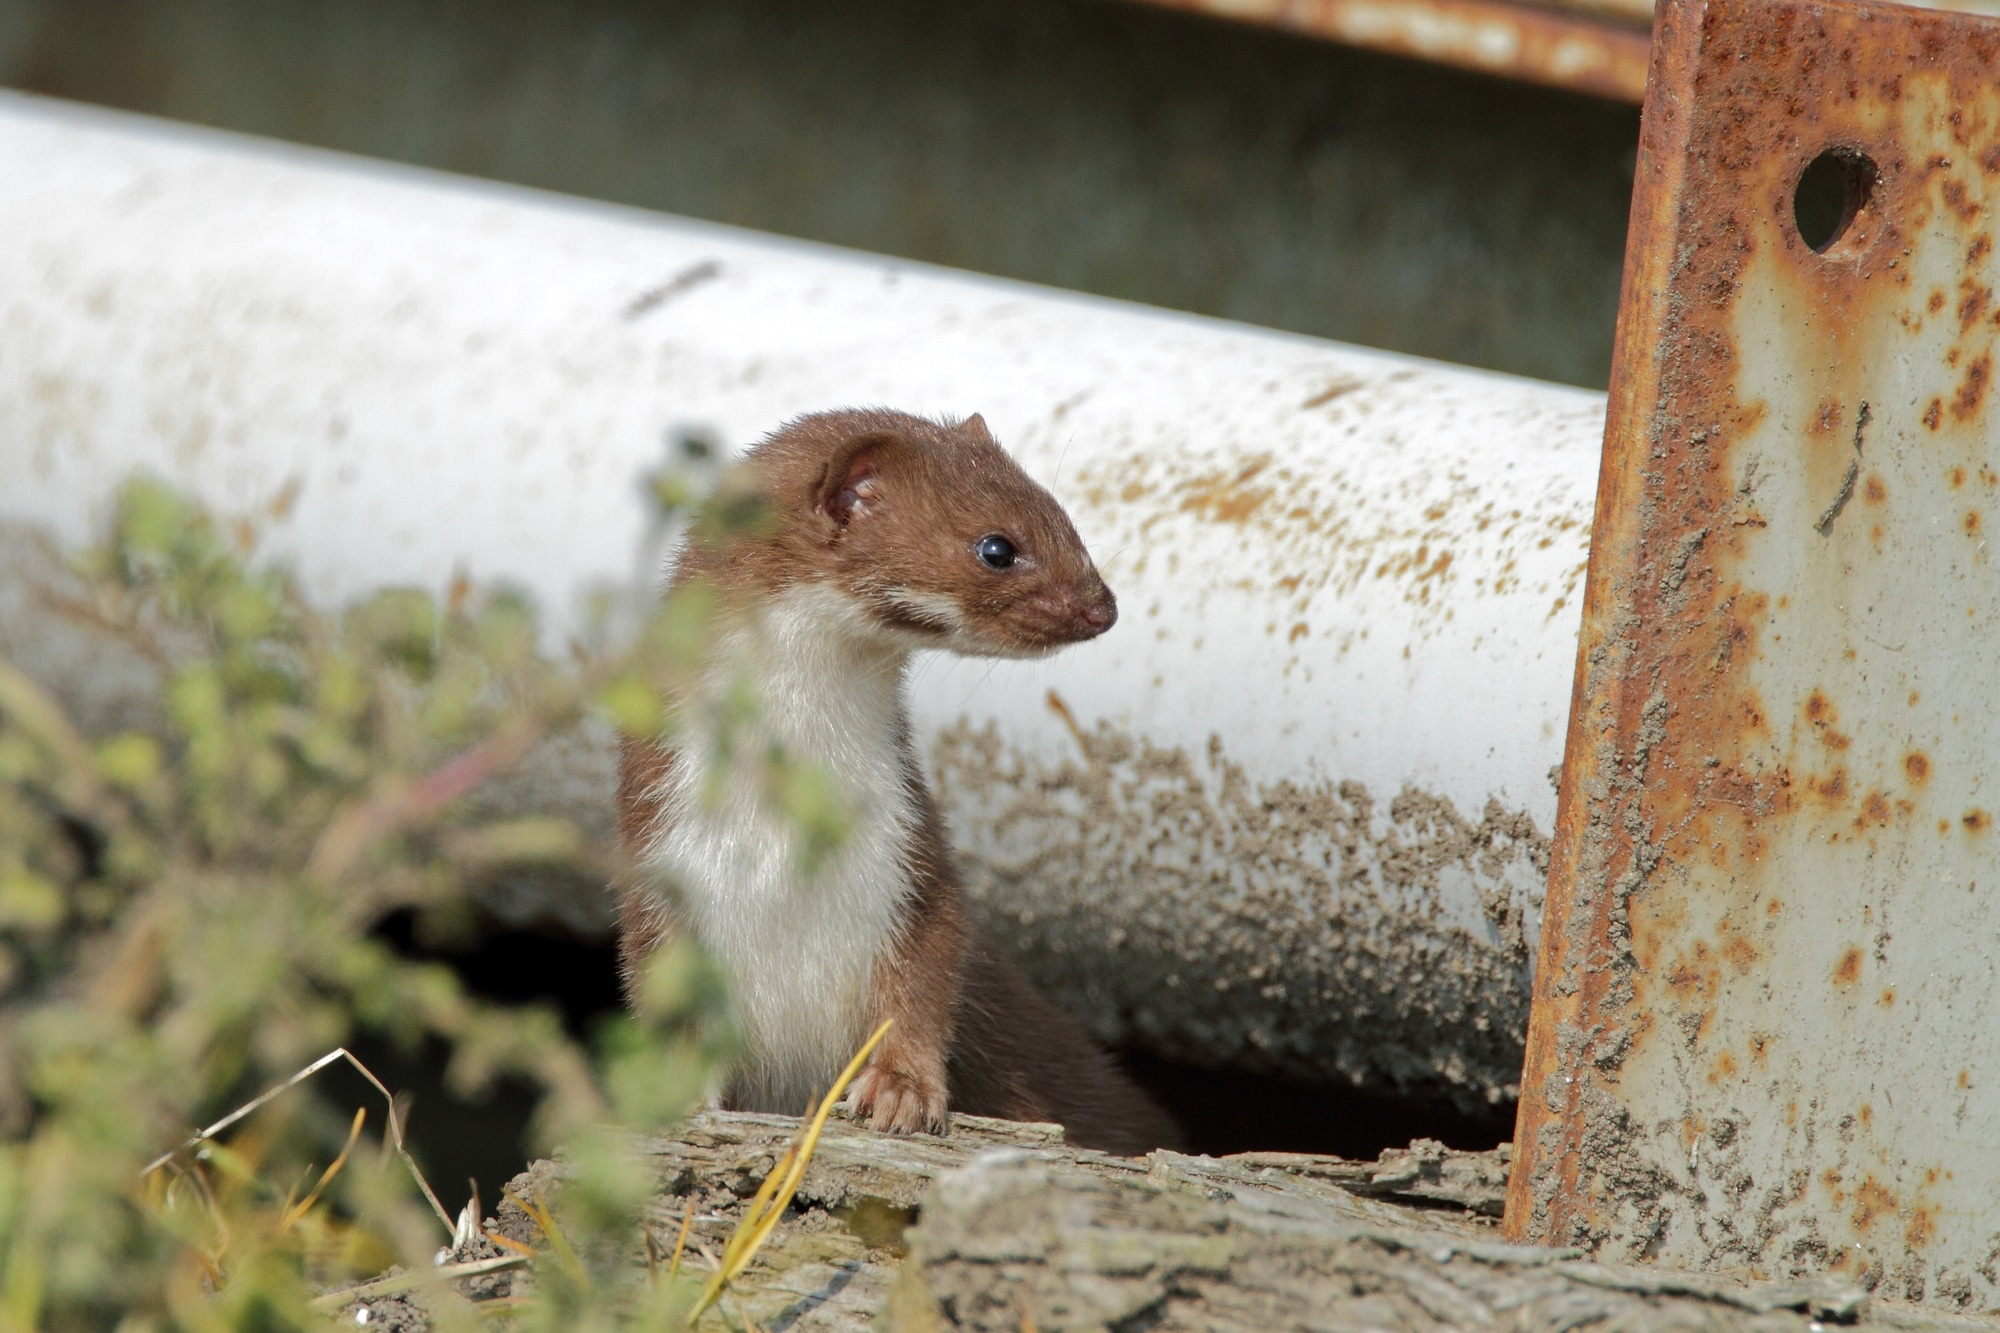 A weasel hides under some pipes